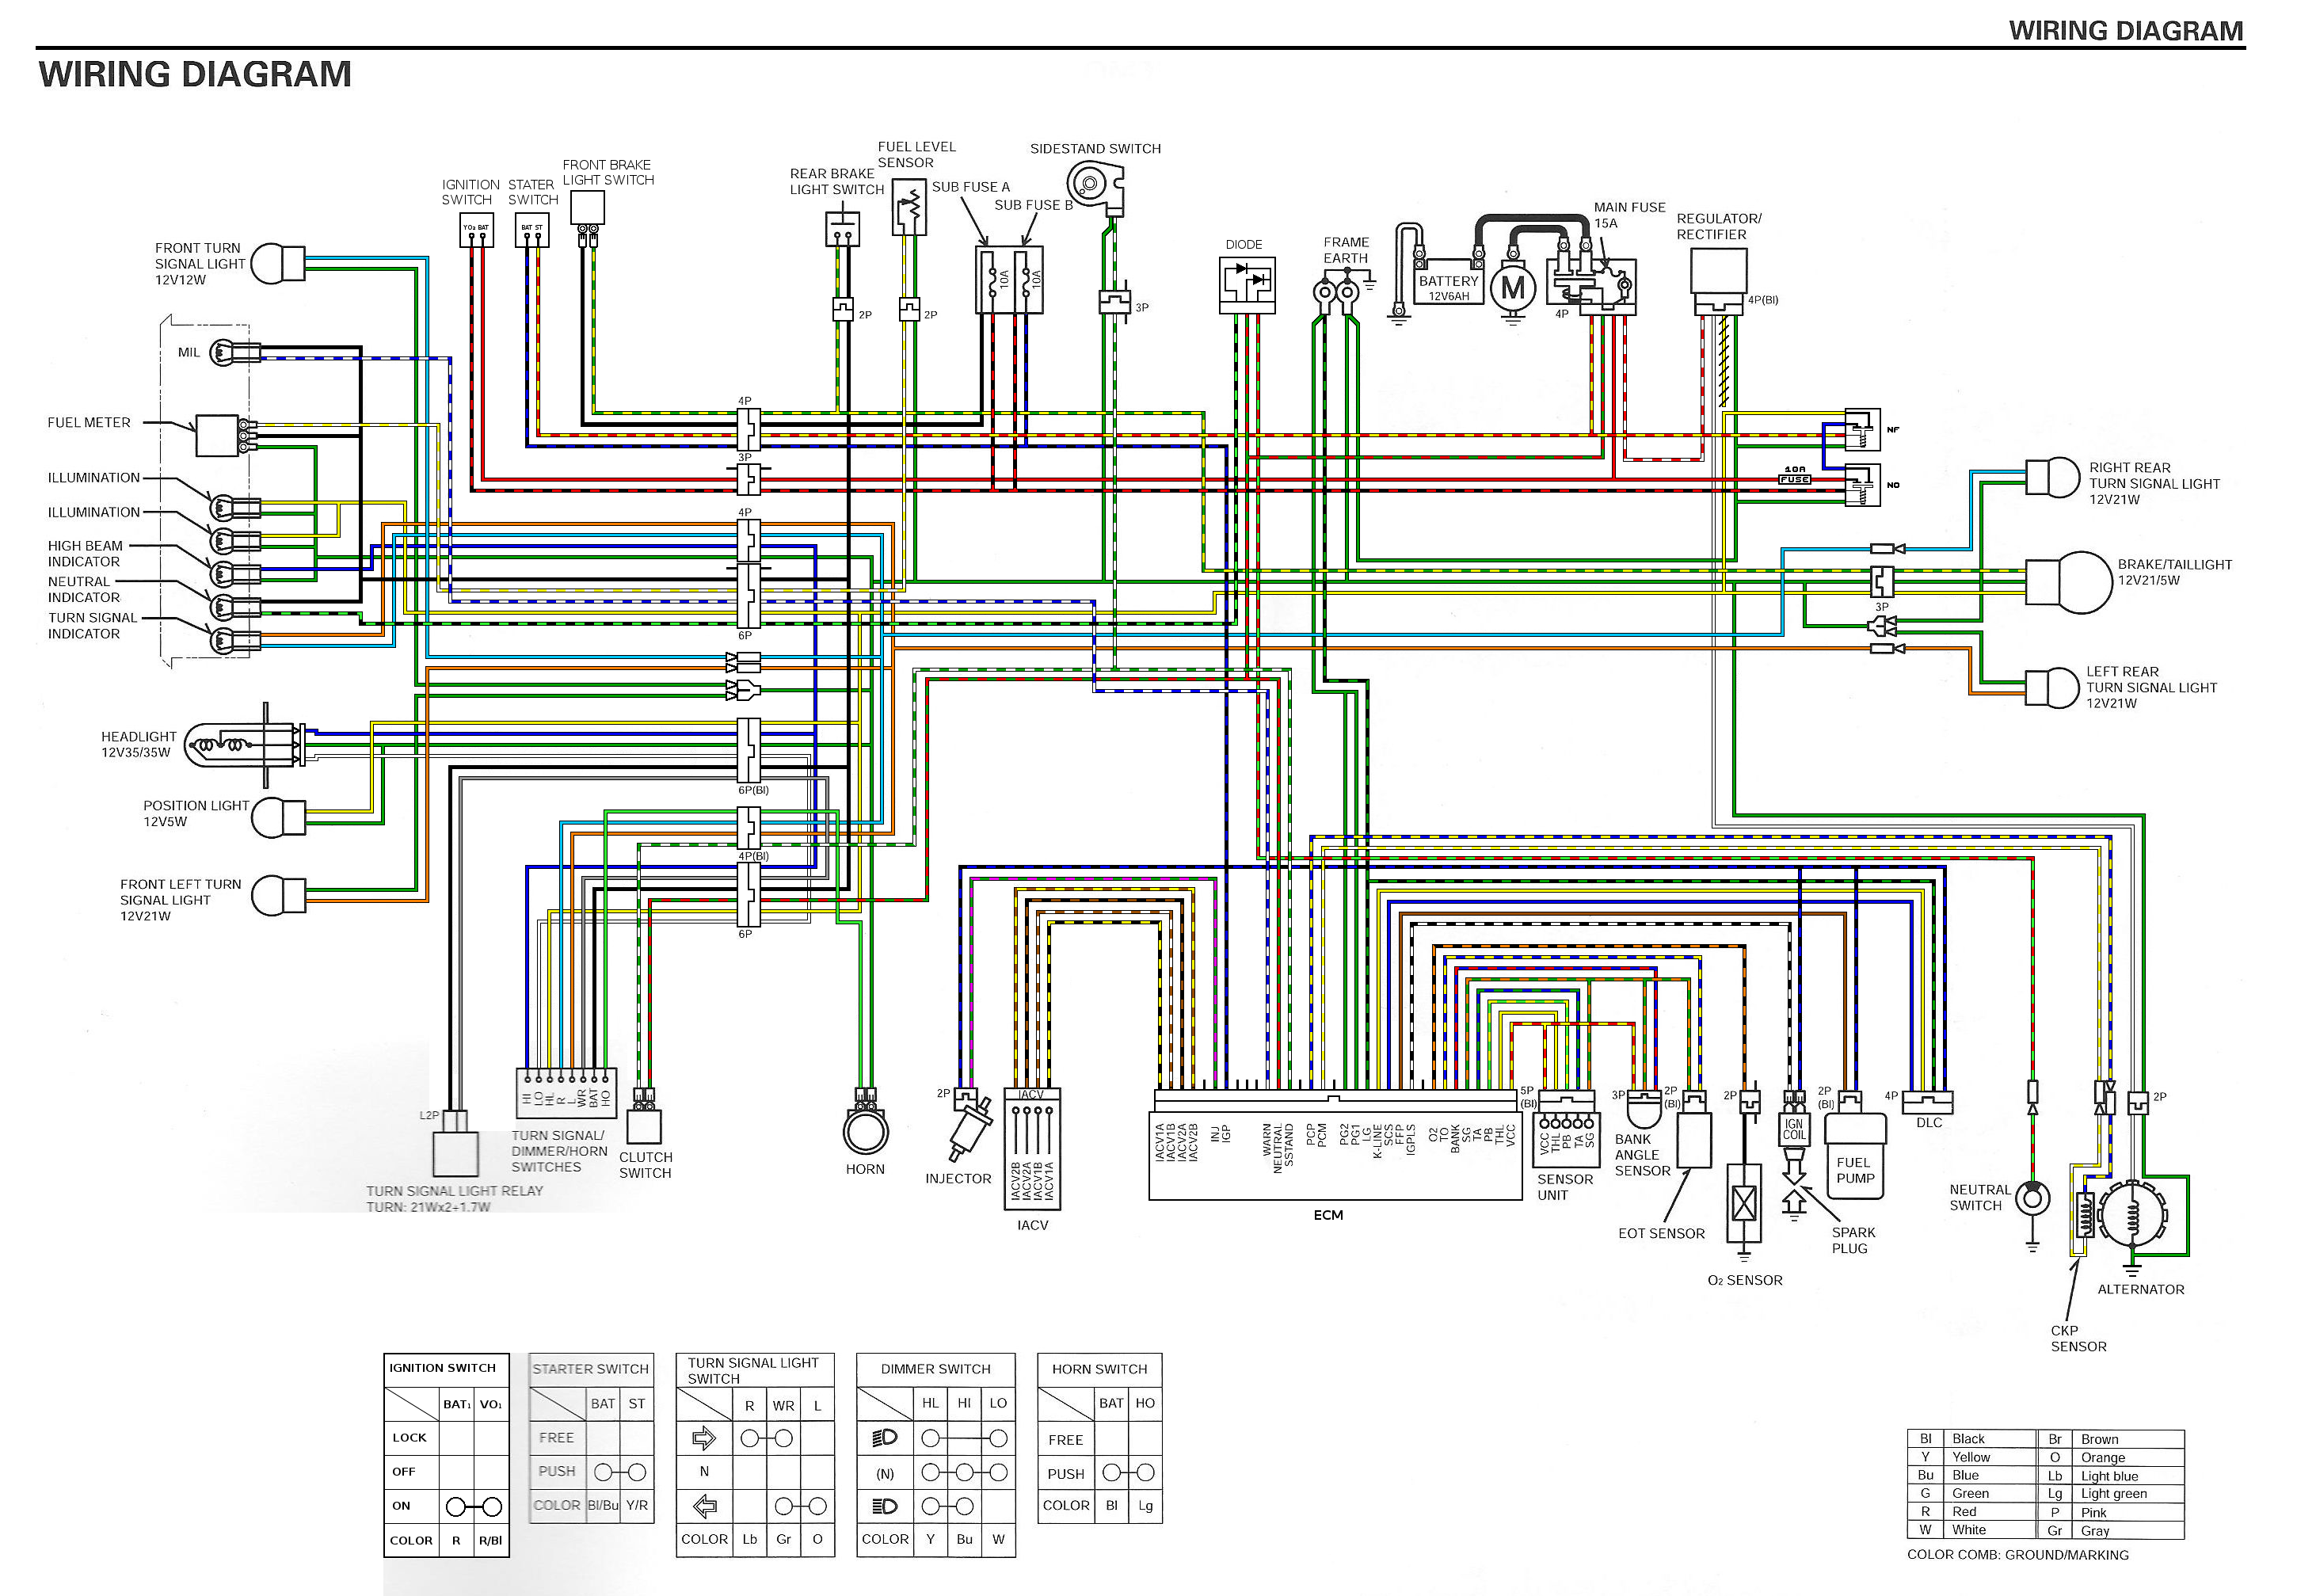 Ttr50 Wiring Diagram Great Design Of Ttr125 Dirt Bike Ttr 225 50 Mods 125